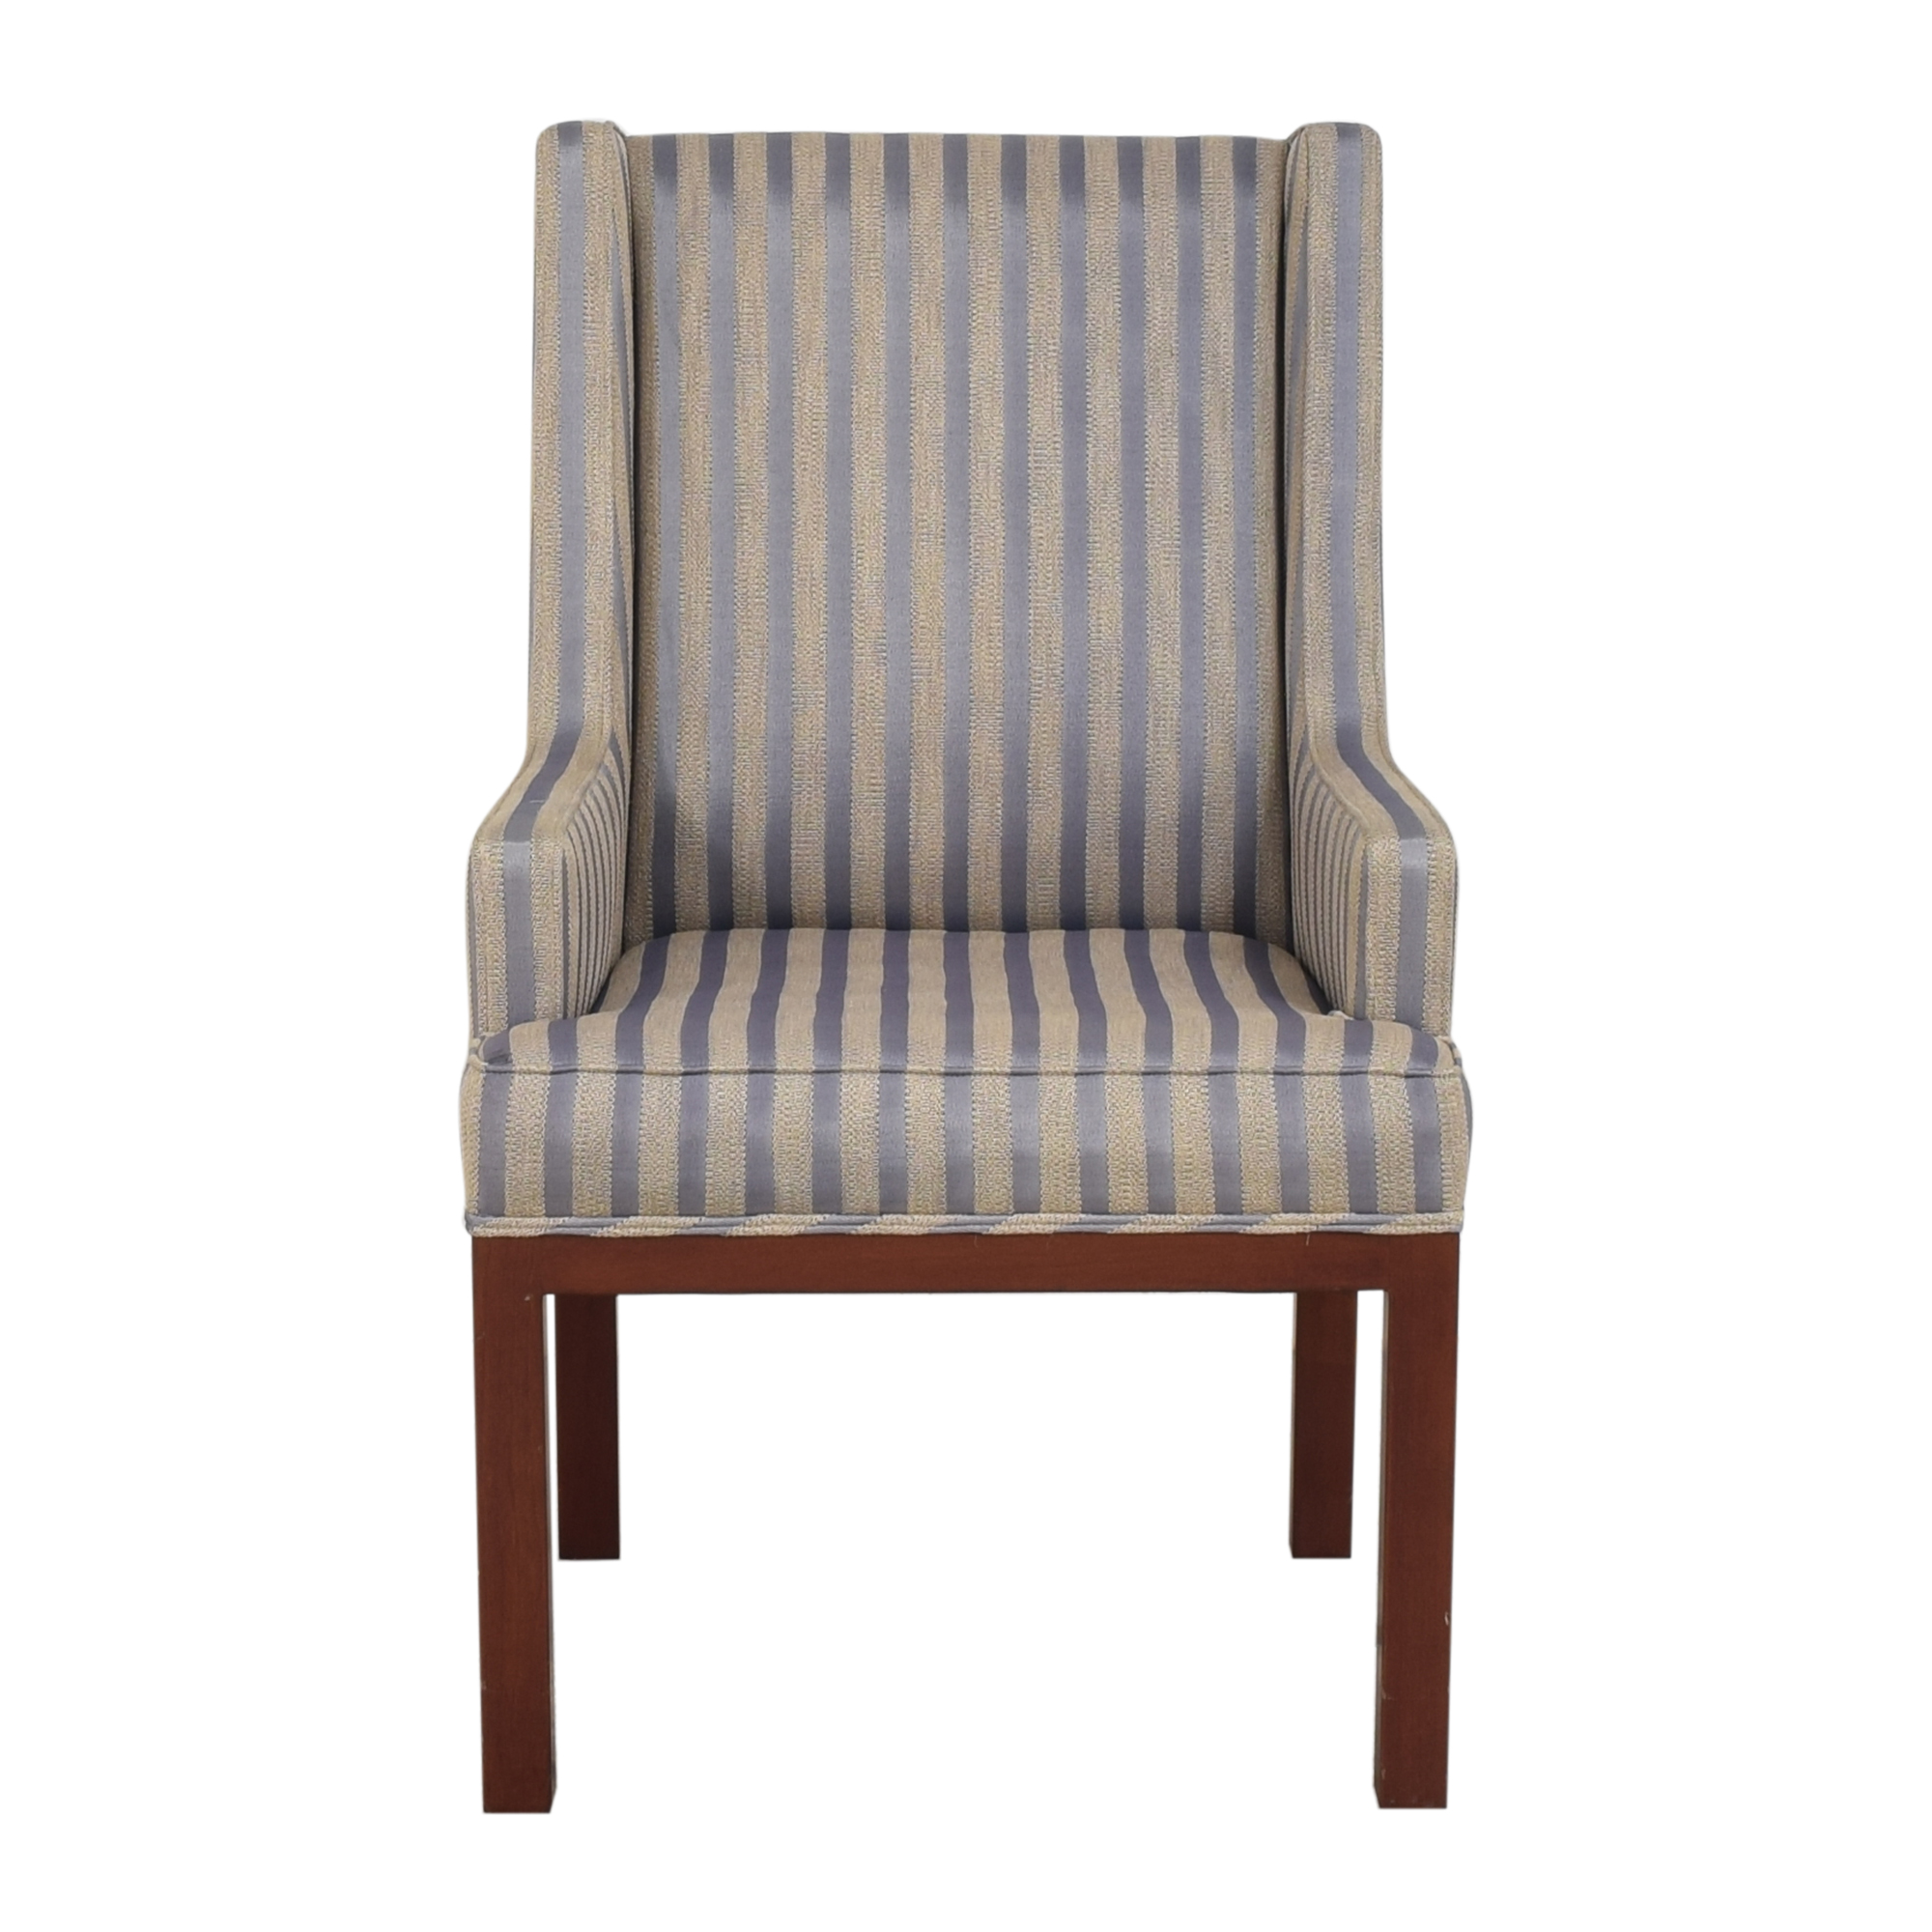 Striped Arm Chair used